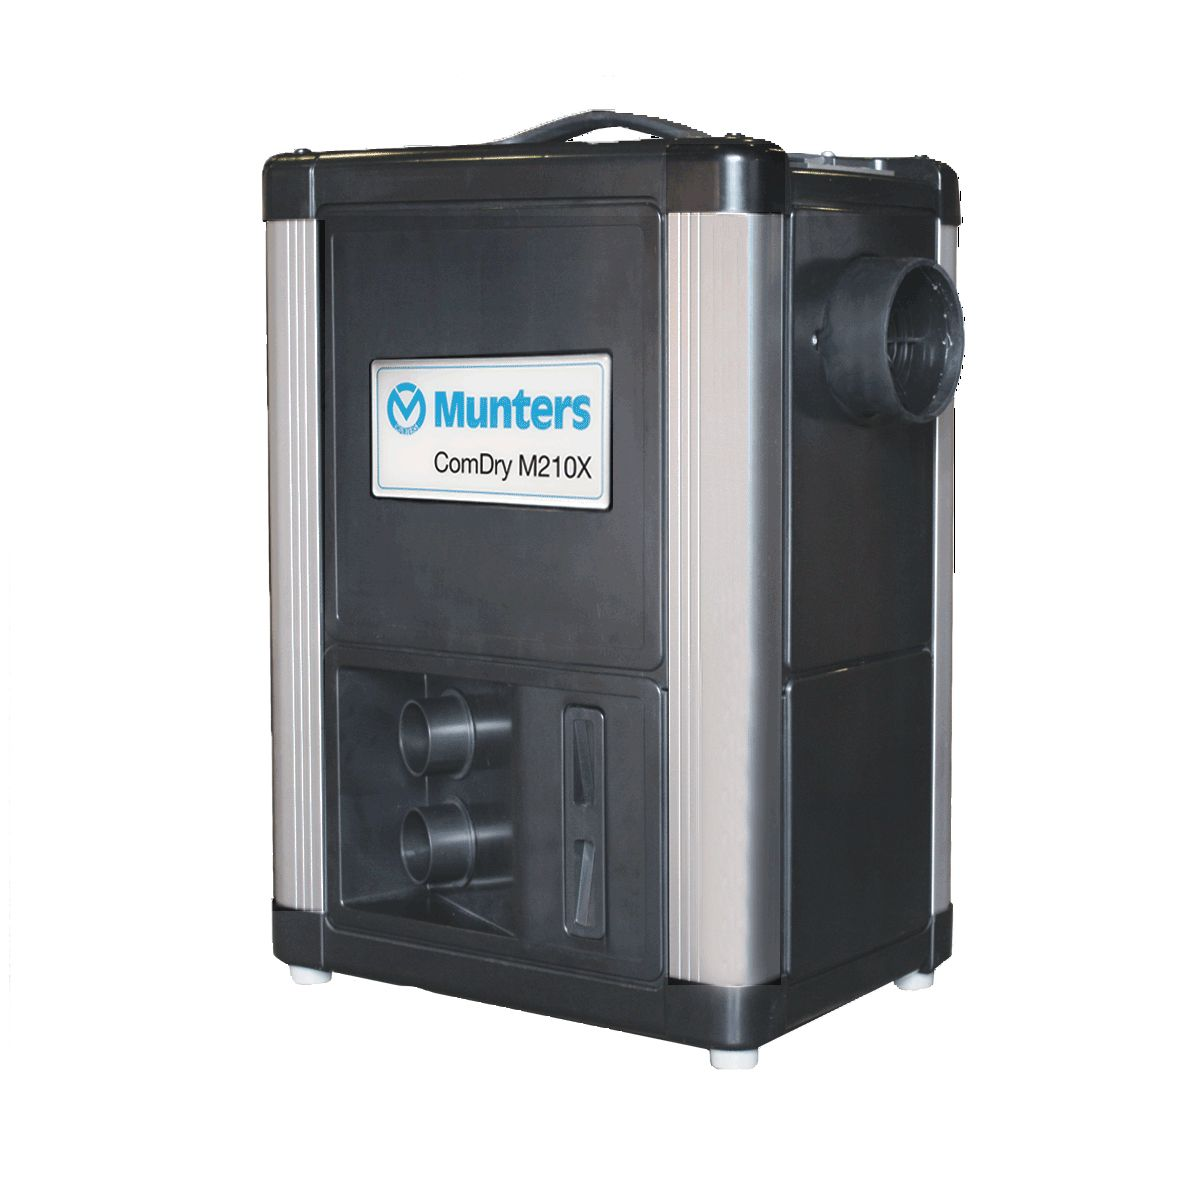 Munters Comdry M210x Ultra Robust Desiccant Dehumidifier